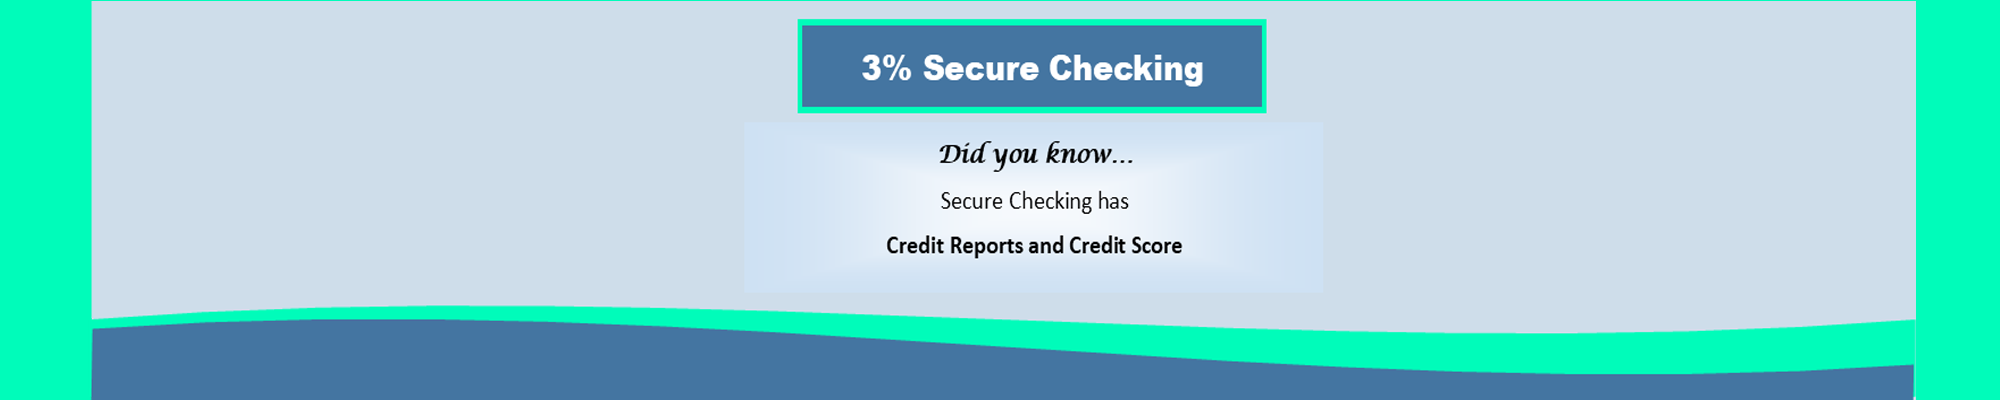 Secure checking benefit 2